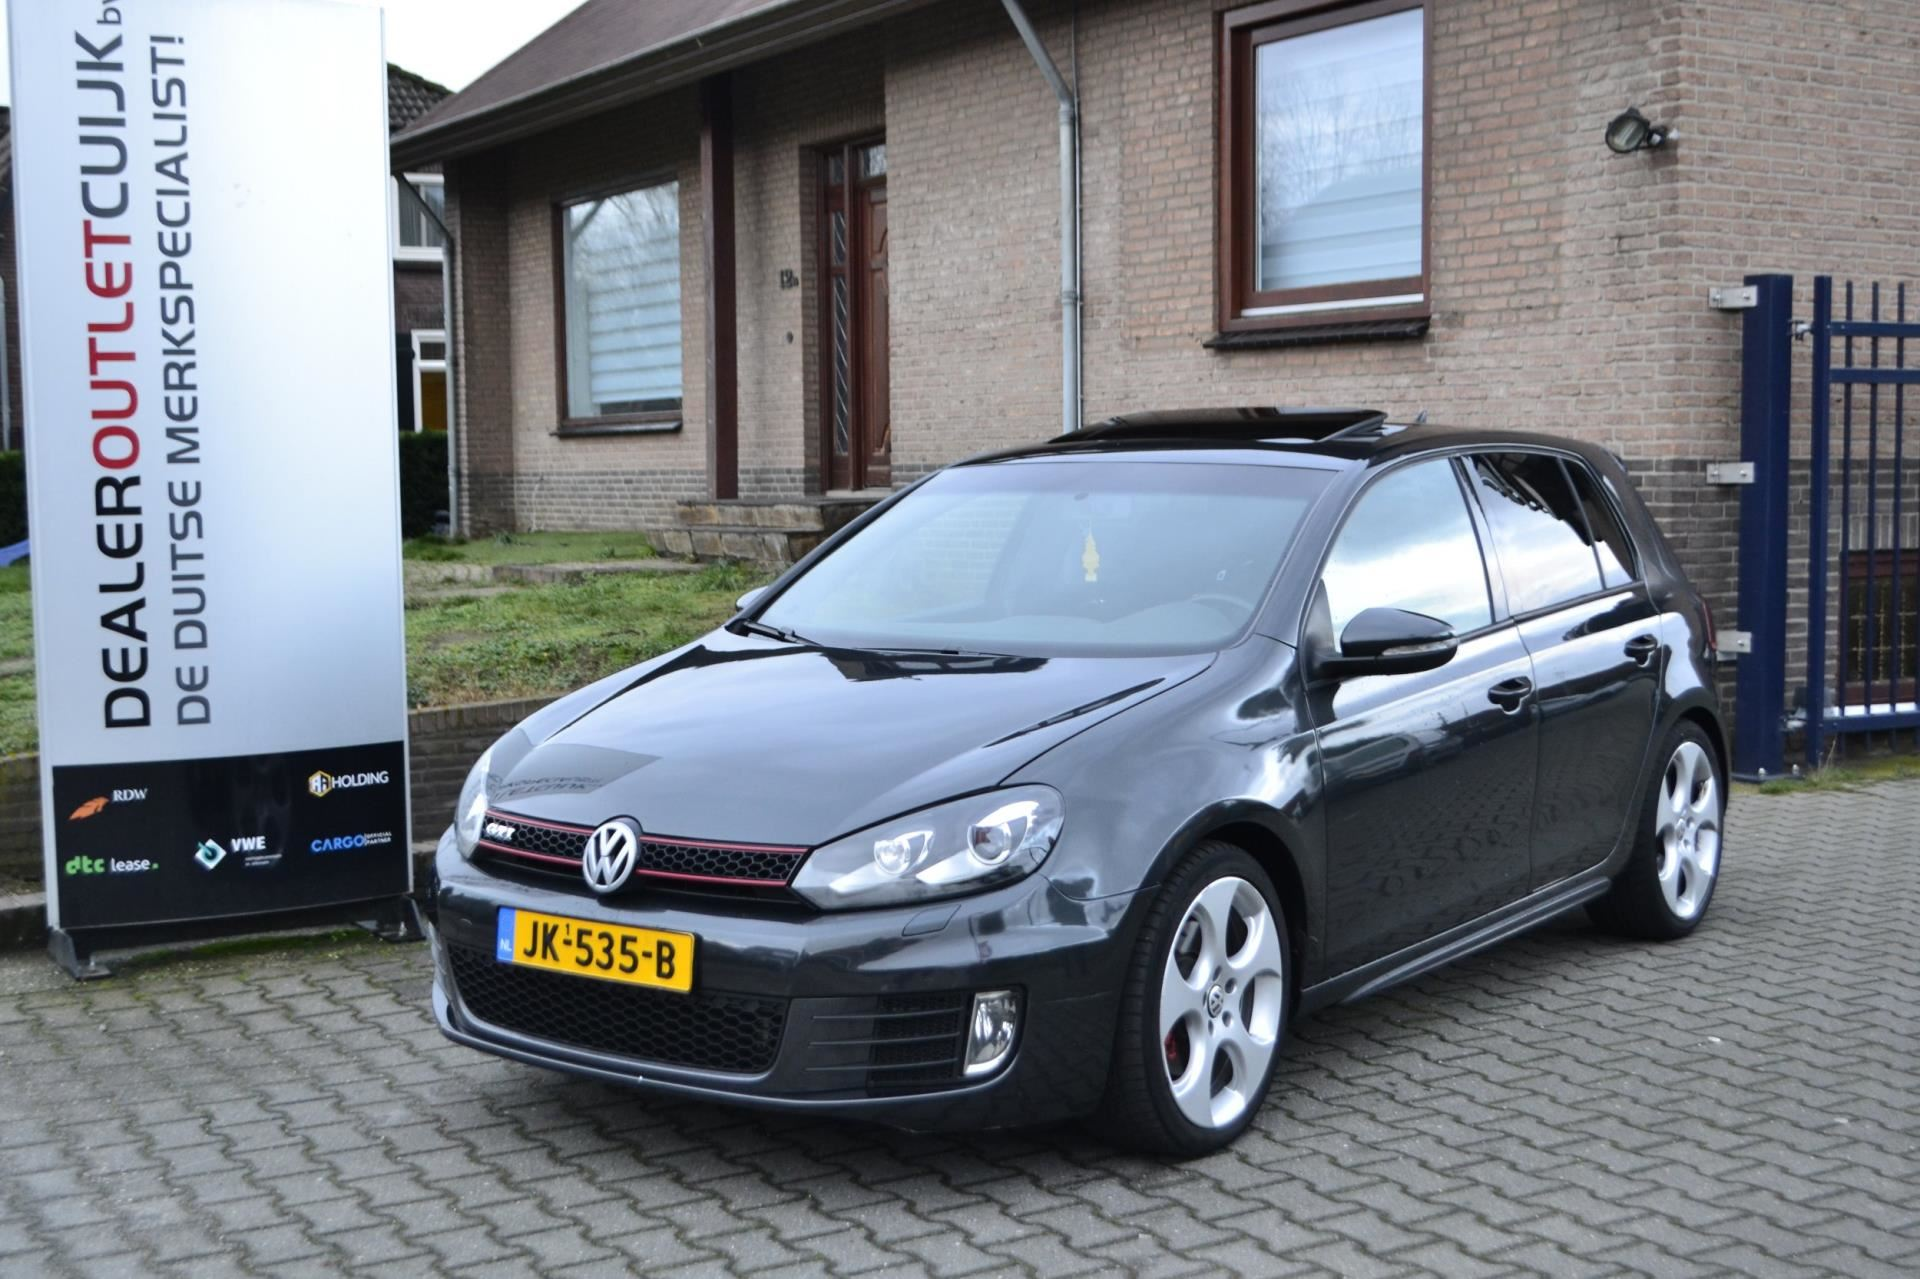 Volkswagen Golf occasion - Dealer Outlet Cuijk b.v.